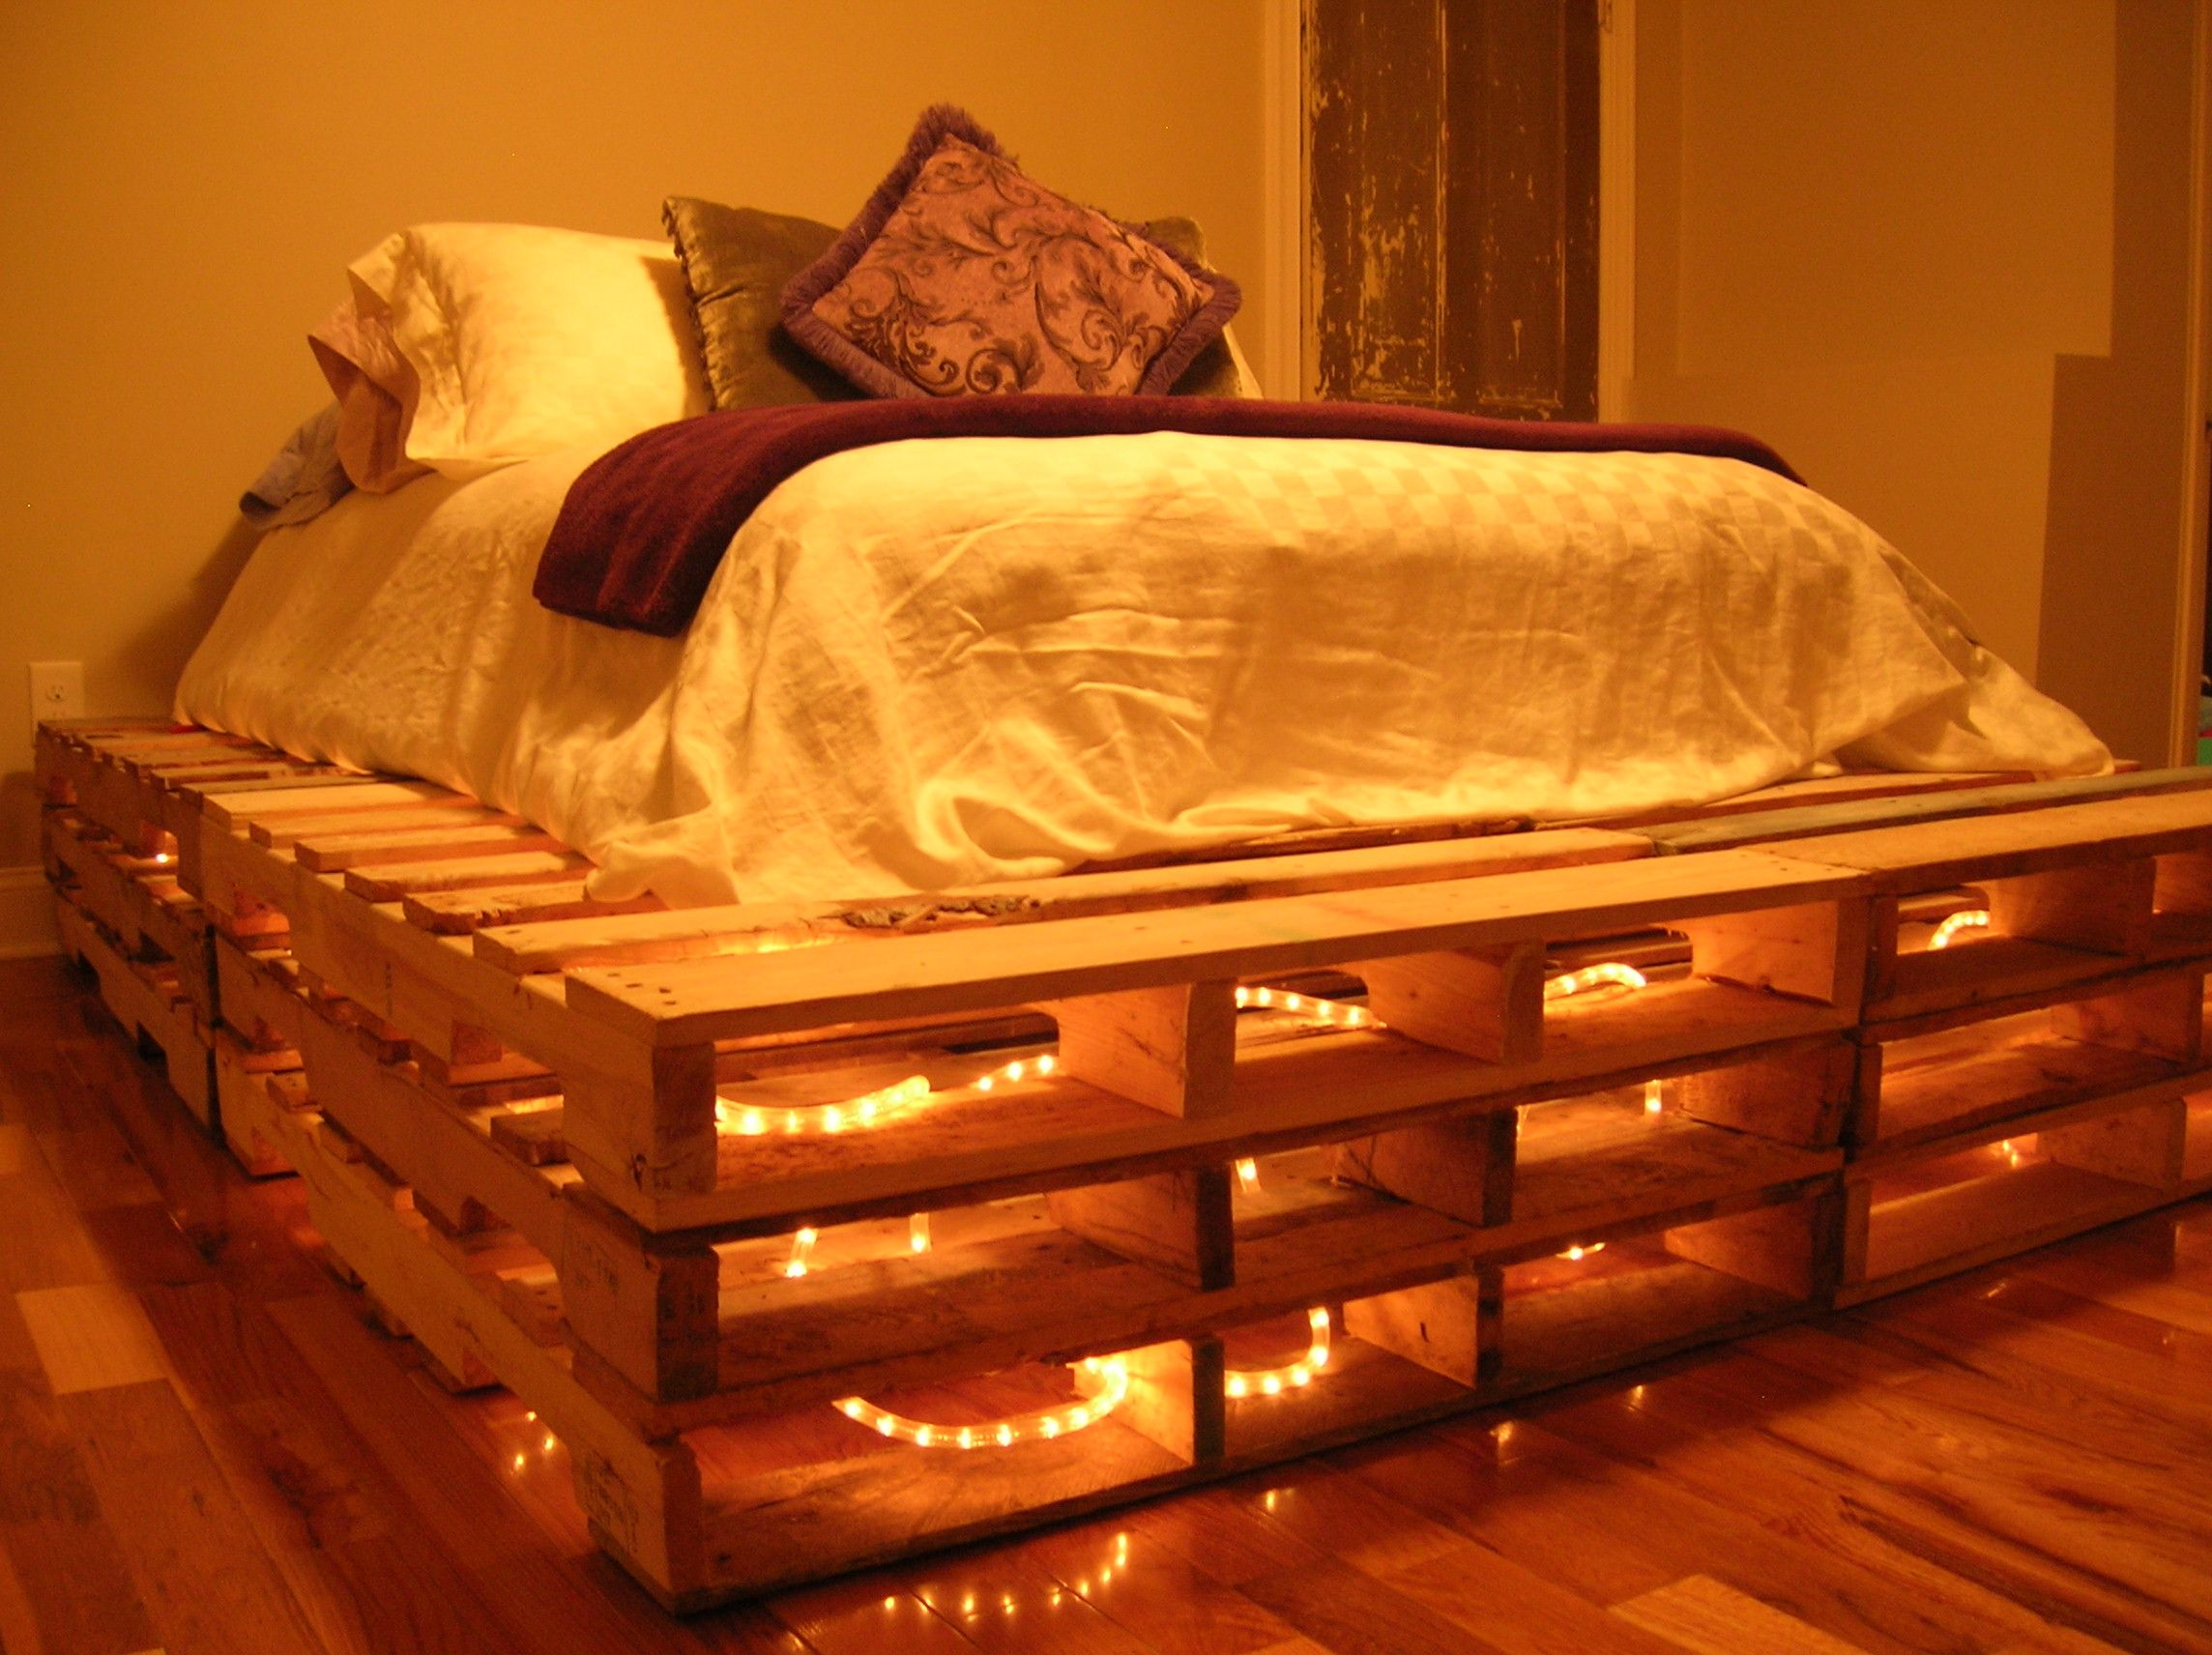 Diy pallet bedroom furniture this pallet bed was so easy we collected  pallets lightly sanded